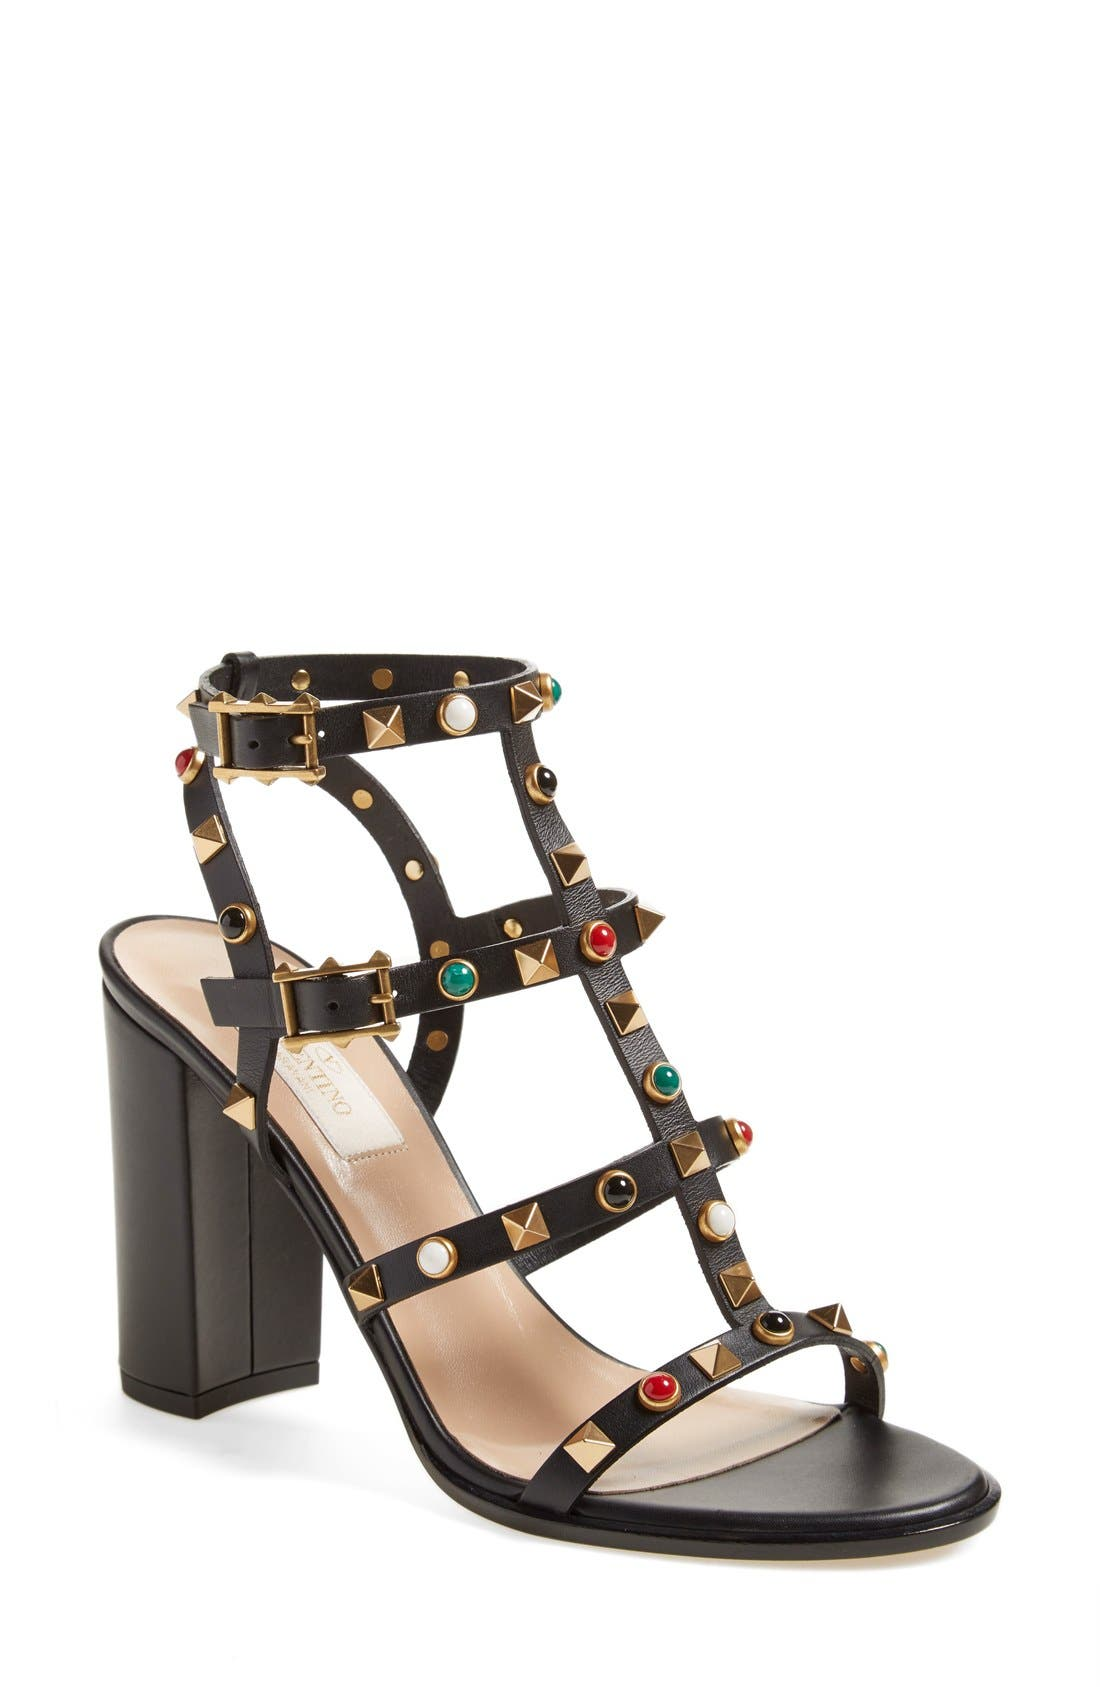 Main Image - Valentino 'Vitello' Studded Sandal (Women)